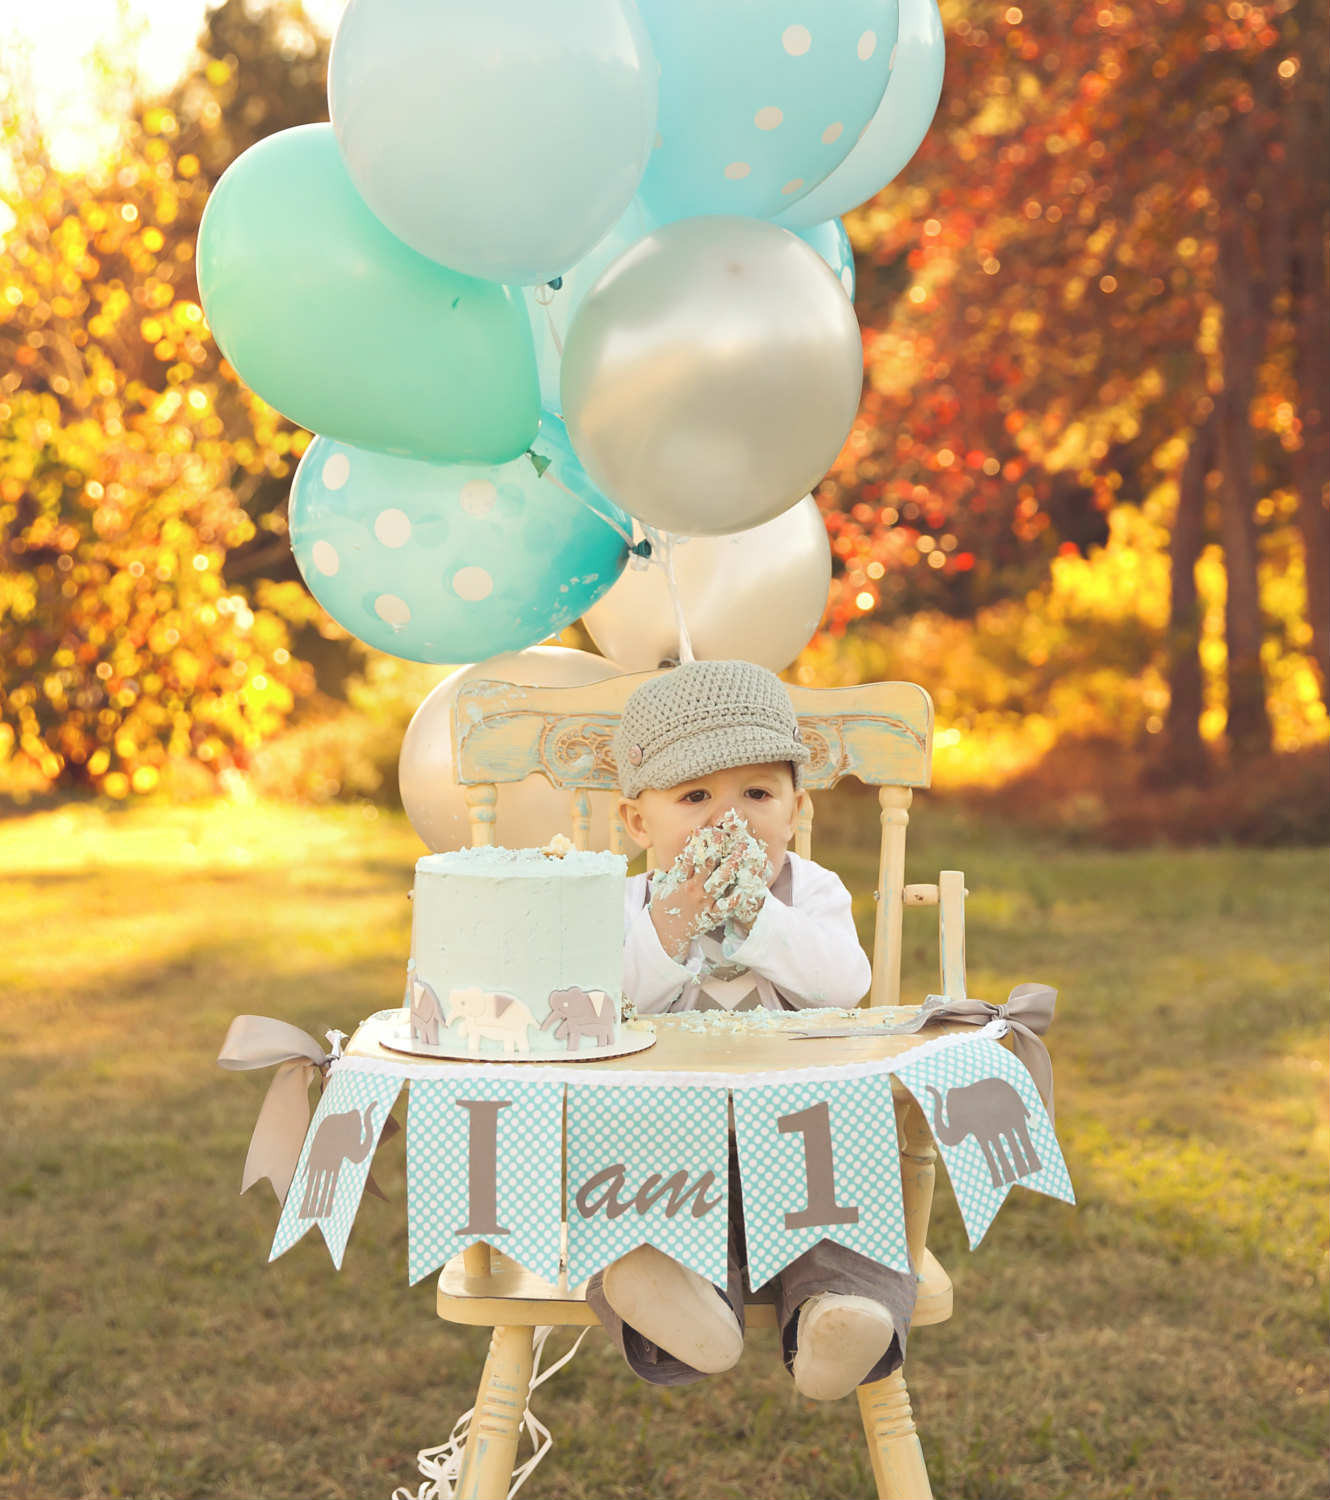 Best ideas about Birthday Ideas For Boys . Save or Pin First Birthday The time to celebrate is here Now.